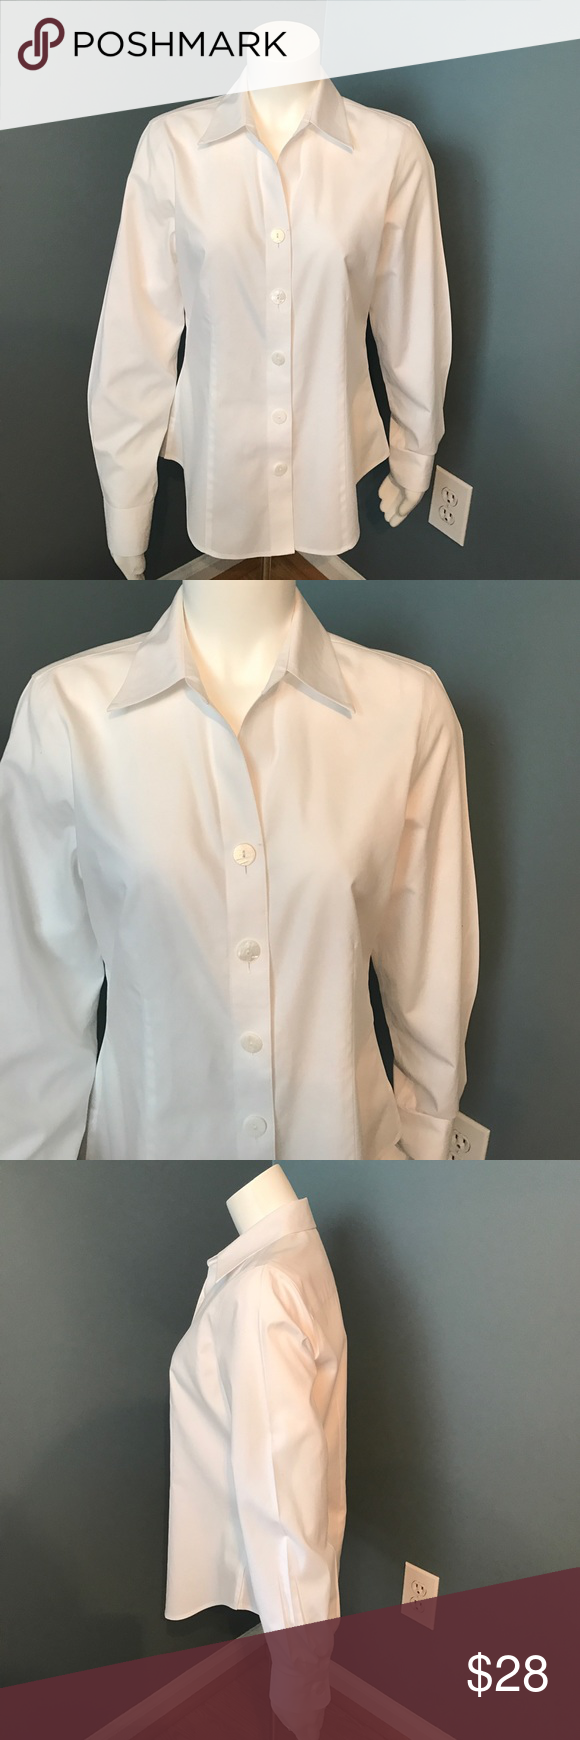 Coldwater Creek no iron white button down blouse Size small 6-8. Large buttons. Long sleeve collar blouse Coldwater Creek Tops Button Down Shirts